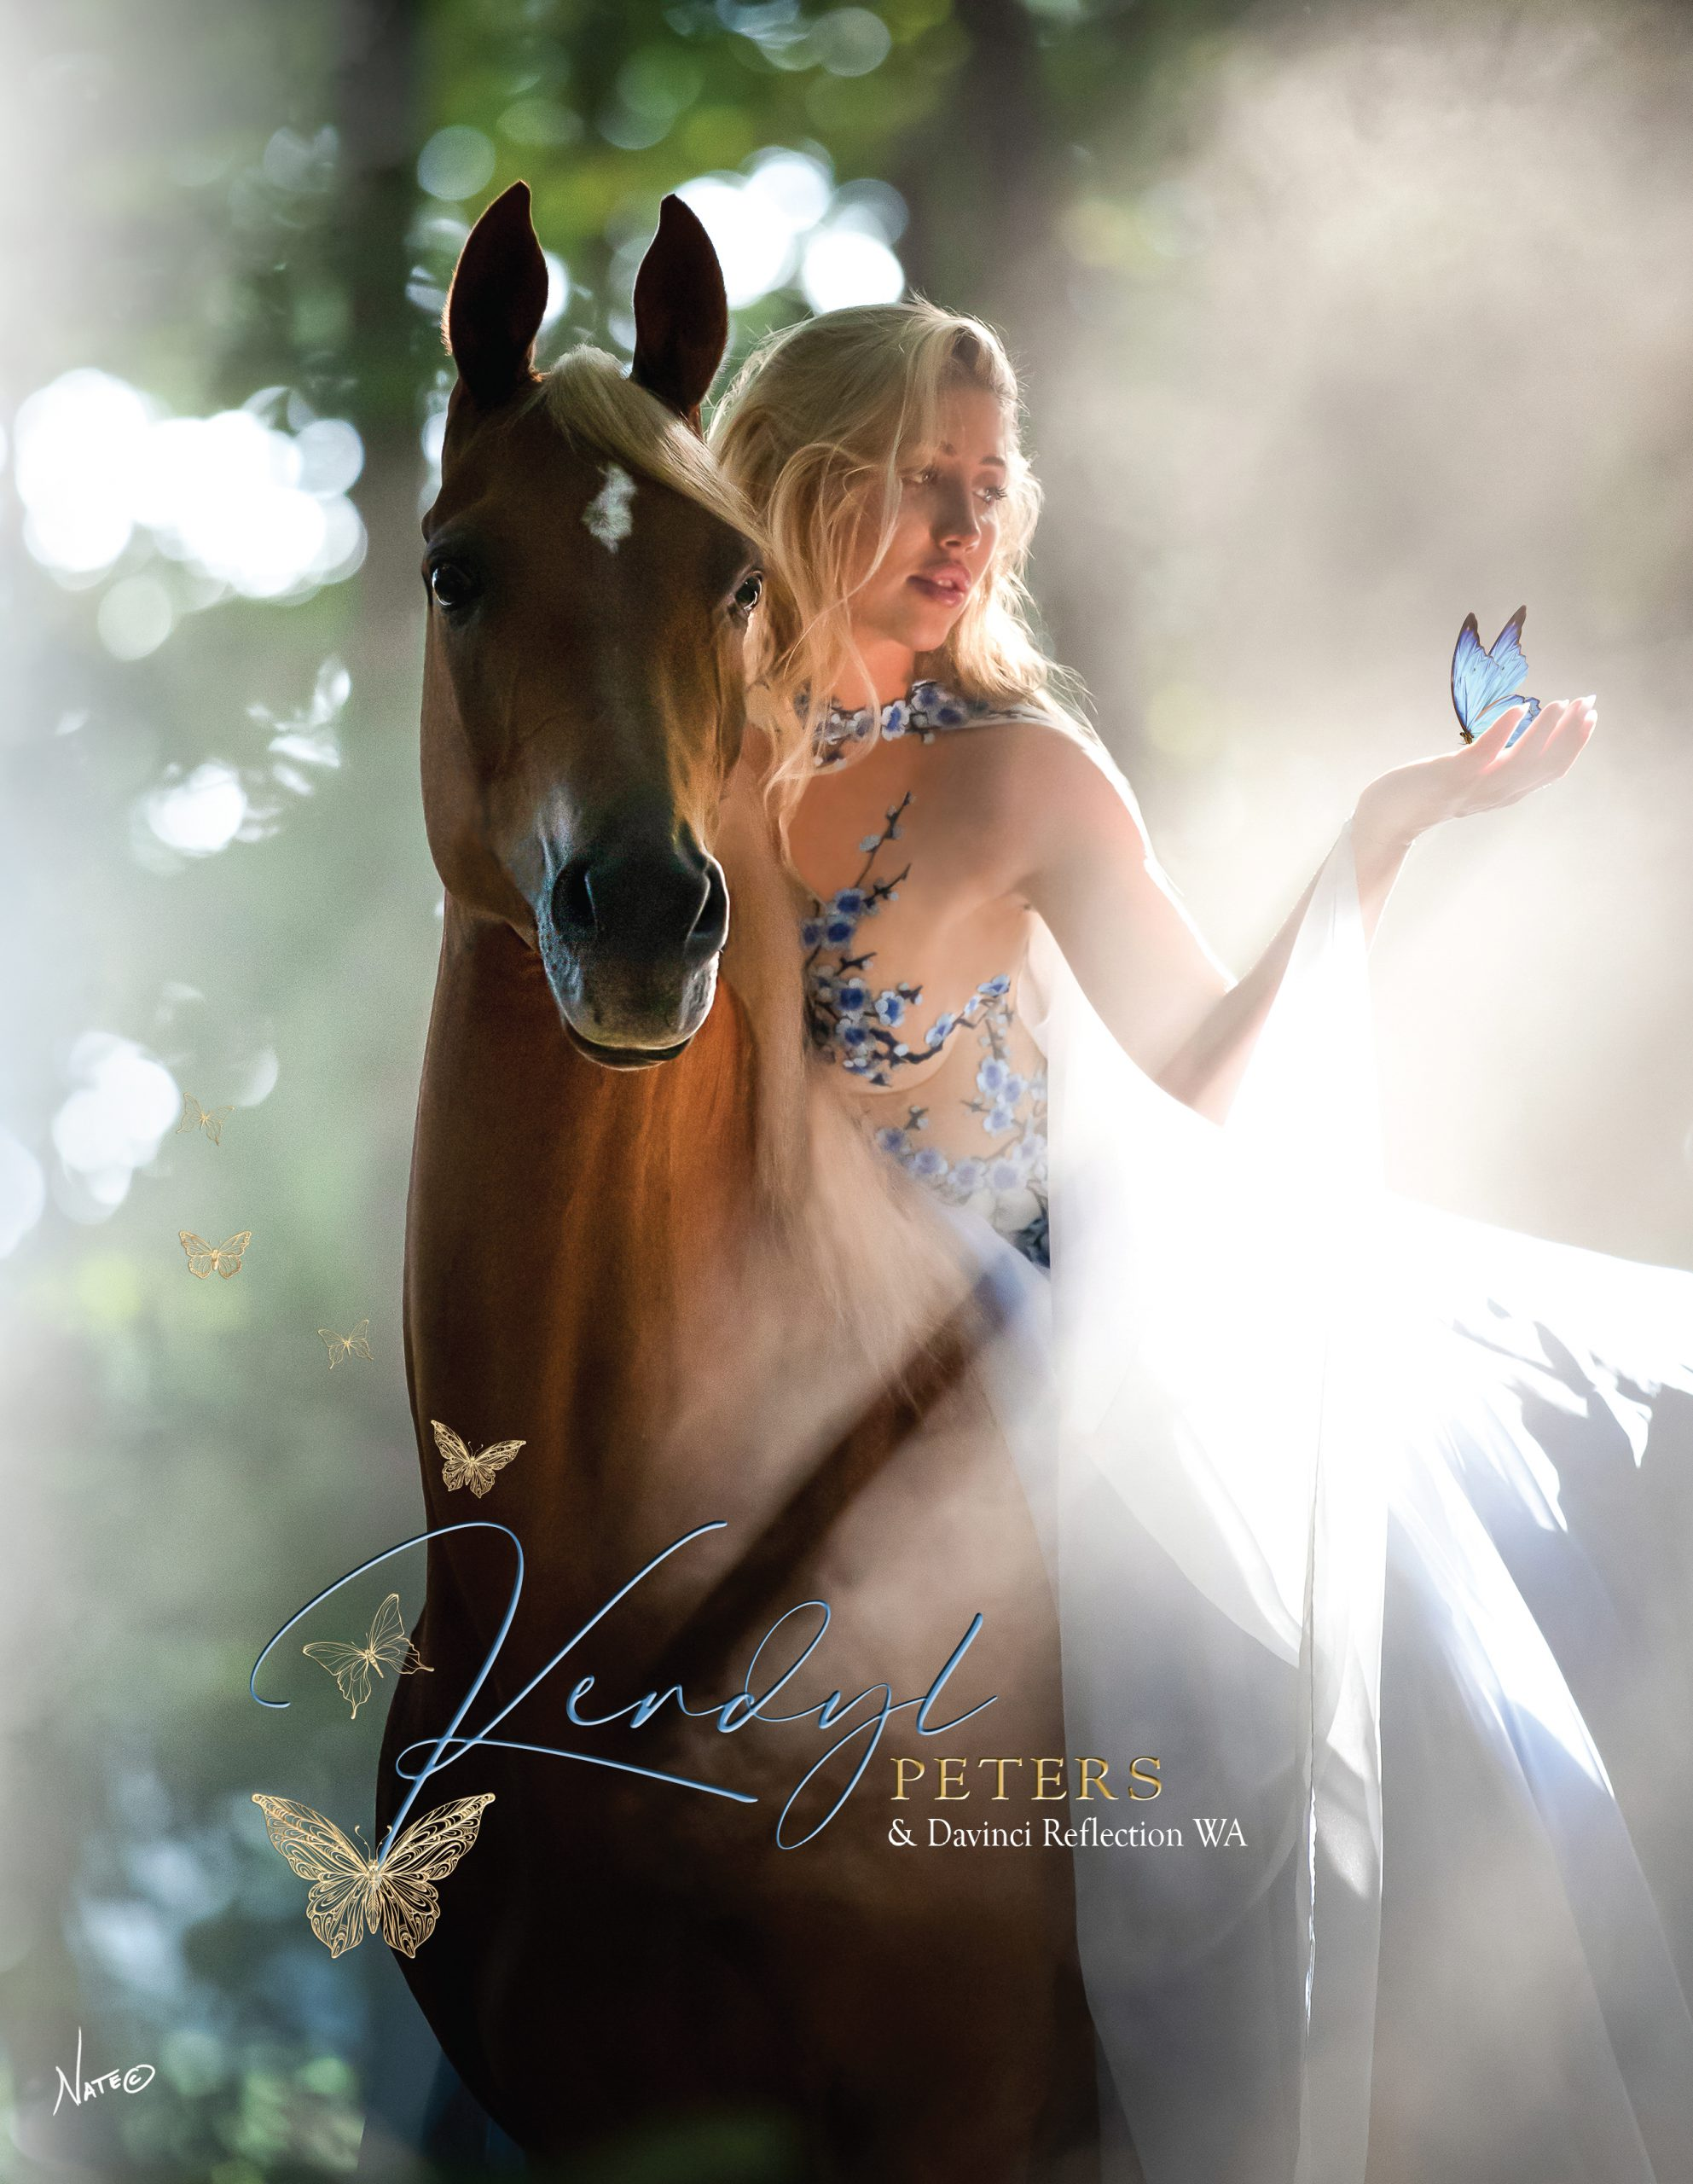 Cover Story - Davinci Reflection WA and Kendyl Peters